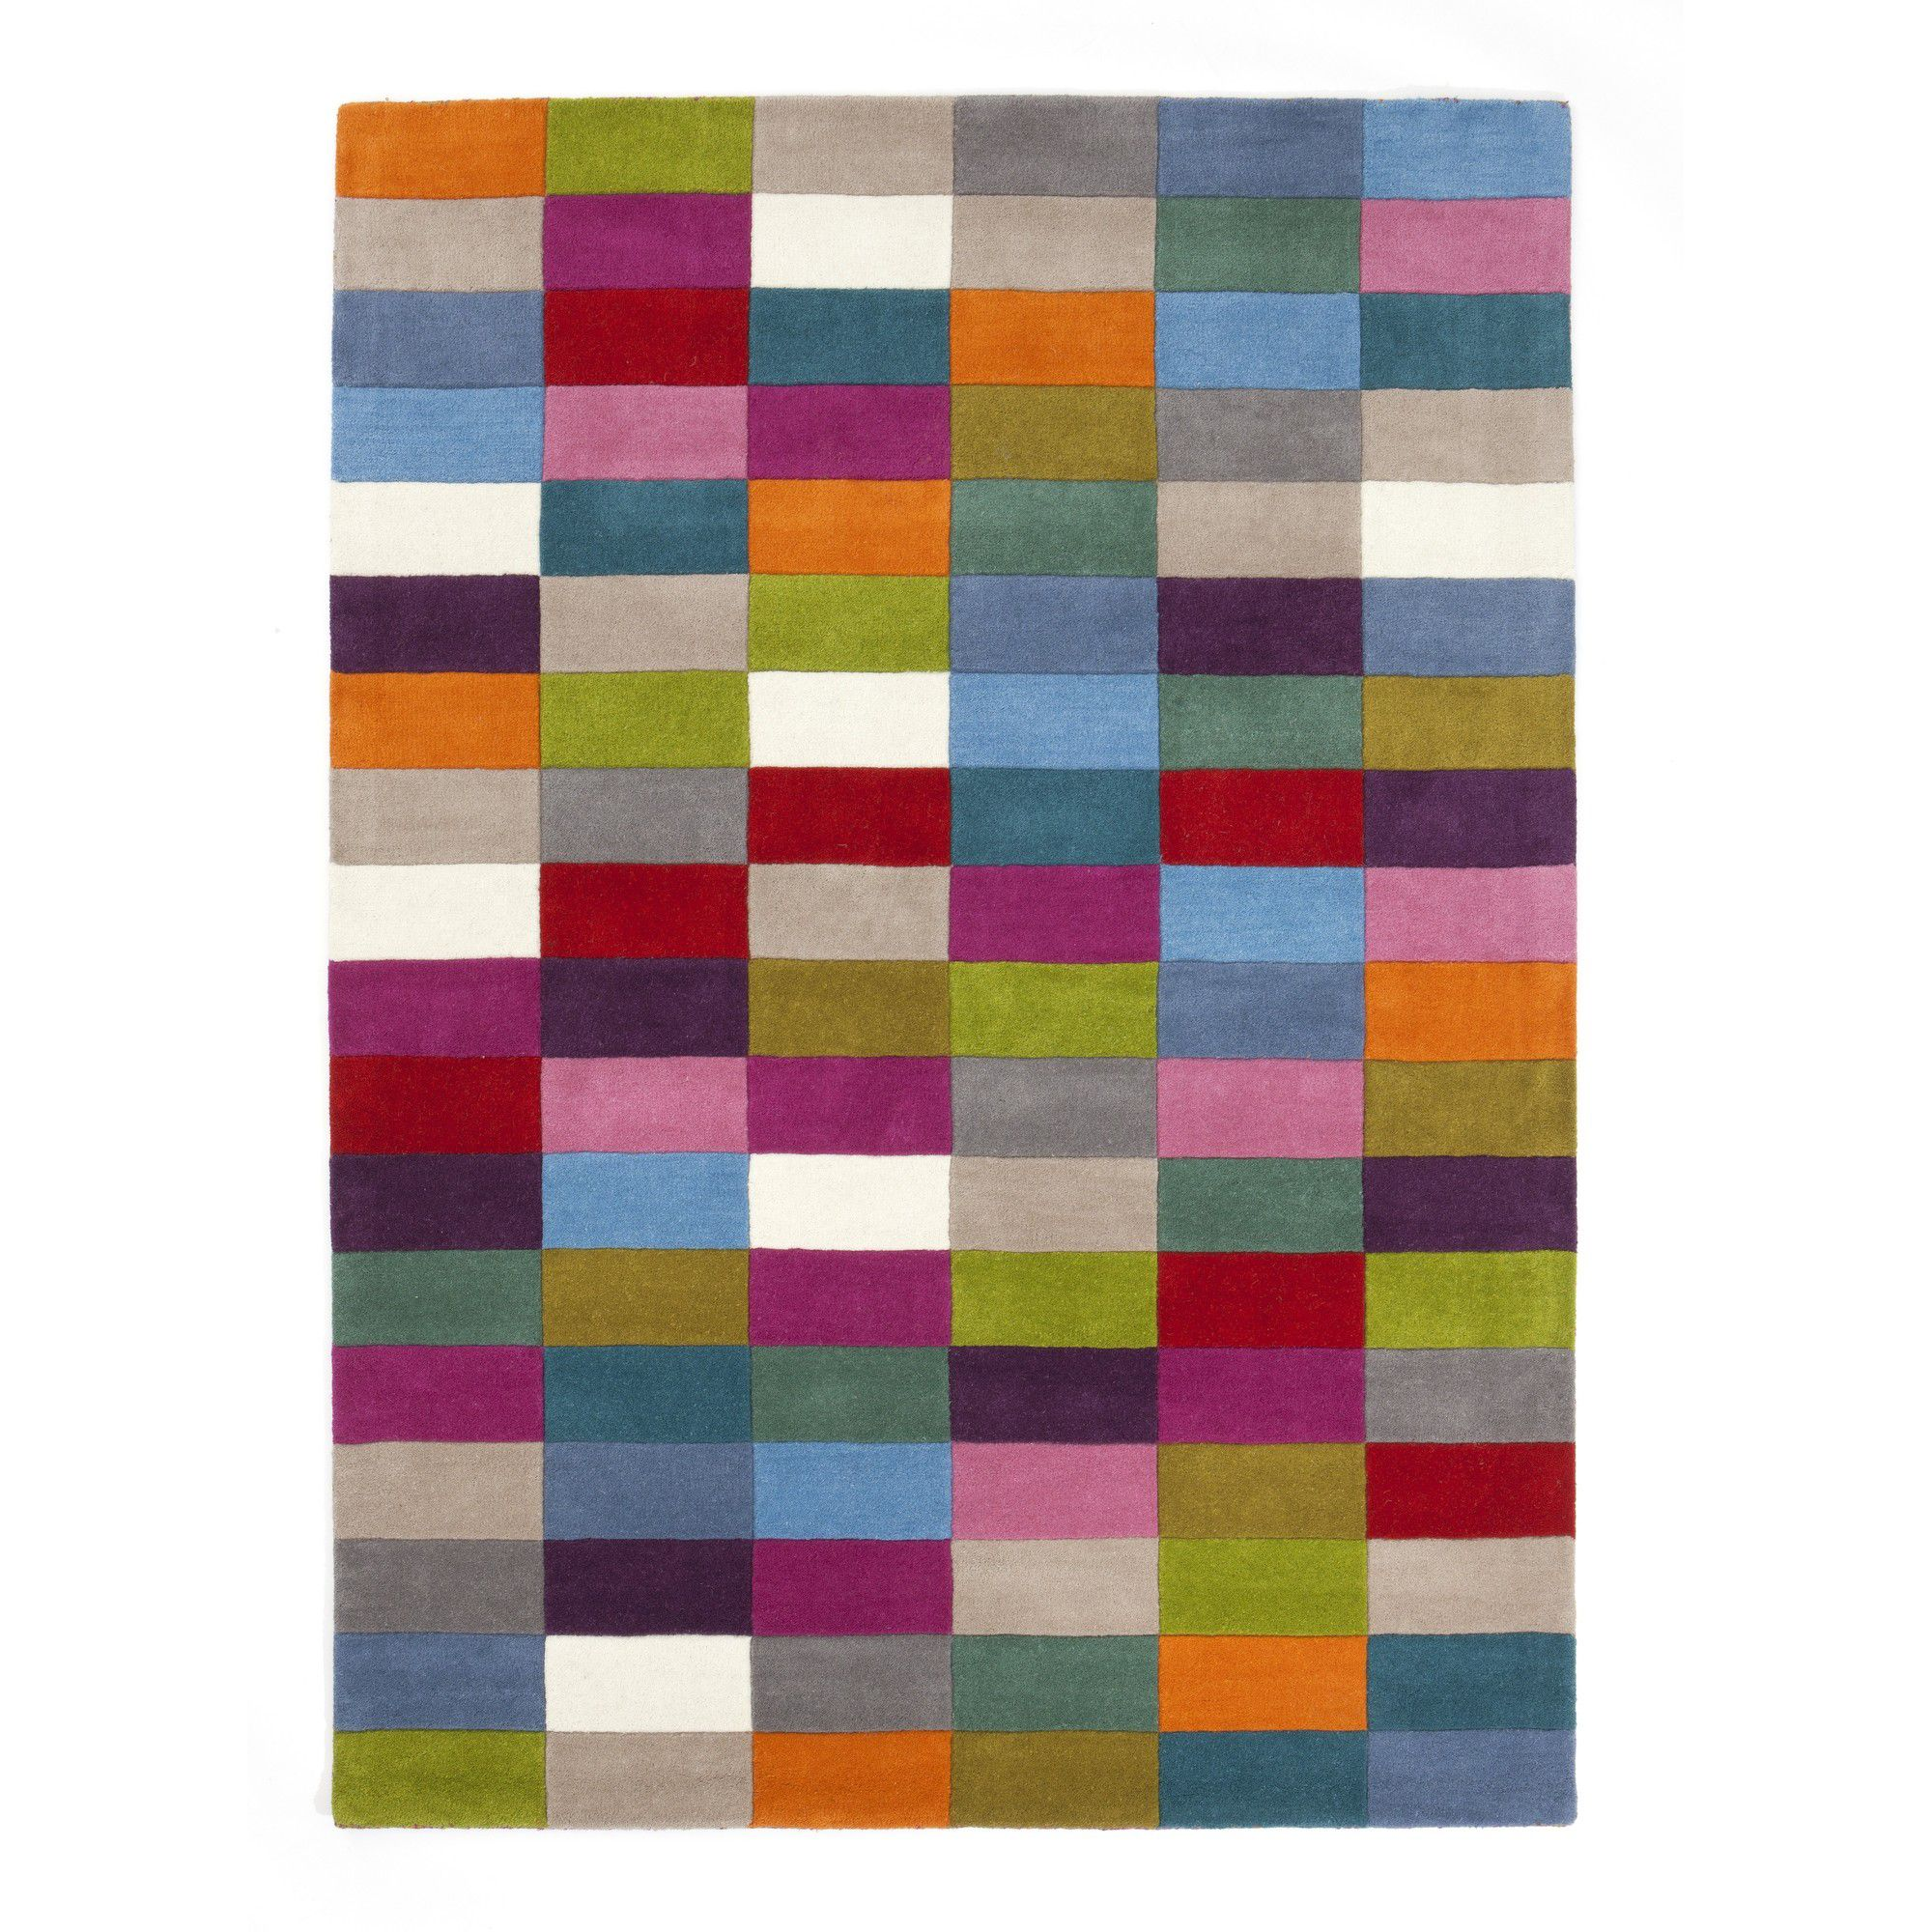 Linie Design Romina Mixed Rug - 200cm x 140cm at Tesco Direct